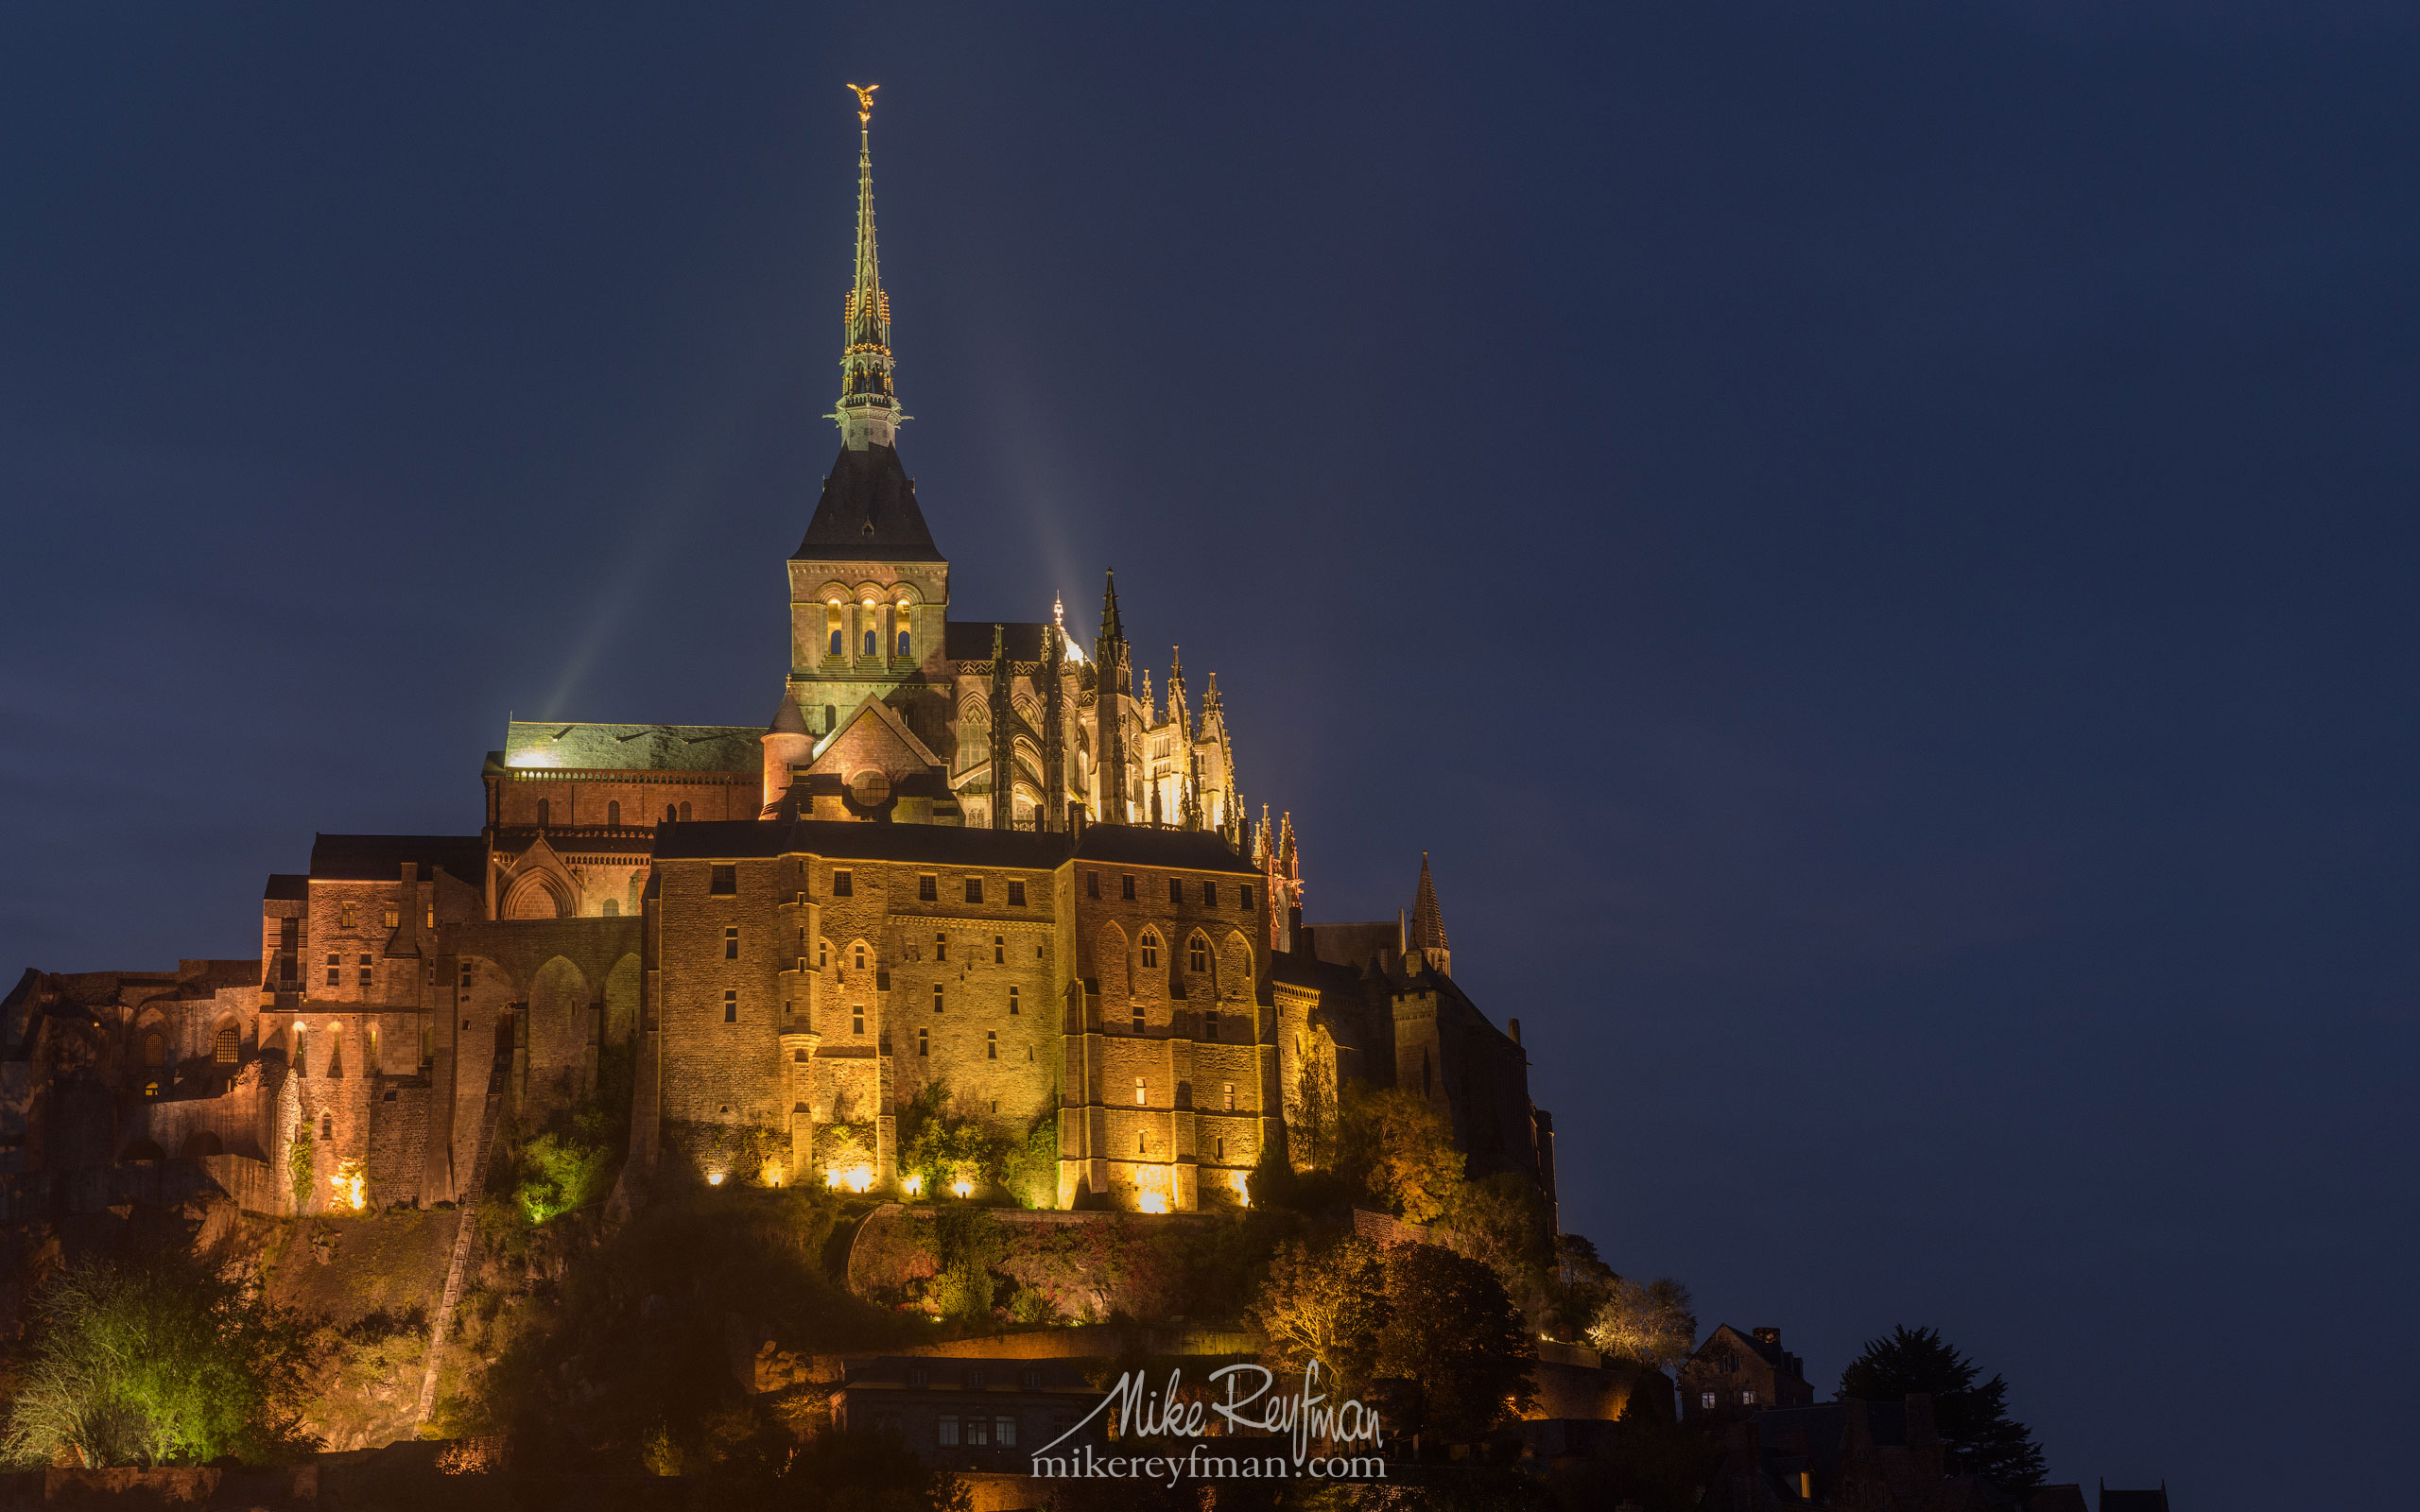 Le Mont-Saint-Michel Island and Benedictine Abbey. Normandy, France SM_MR50A1087 - Le Mont Saint Michel Island and Benedictine Abbey, Normandy, France - Mike Reyfman Photography